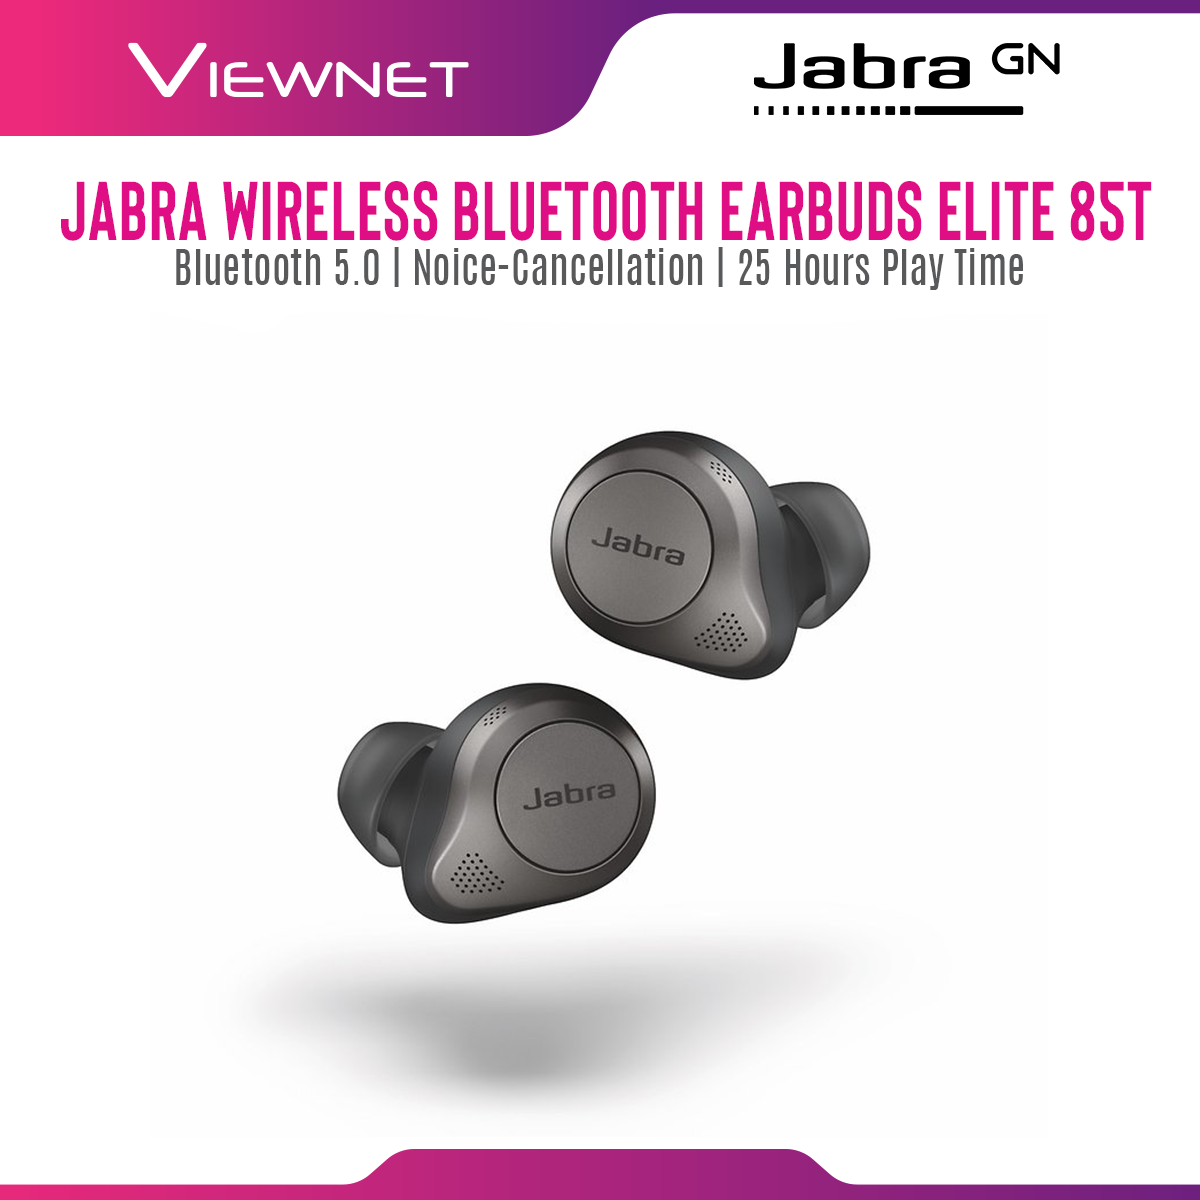 Jabra Elite 85T Wireless Bluetooth Earbuds with Bluetooth 5.0, Noice-Cancellation, 25 Hours Play Time, 6-Micropohne Call Technology, Voice Assistant, Wireless Charging Case